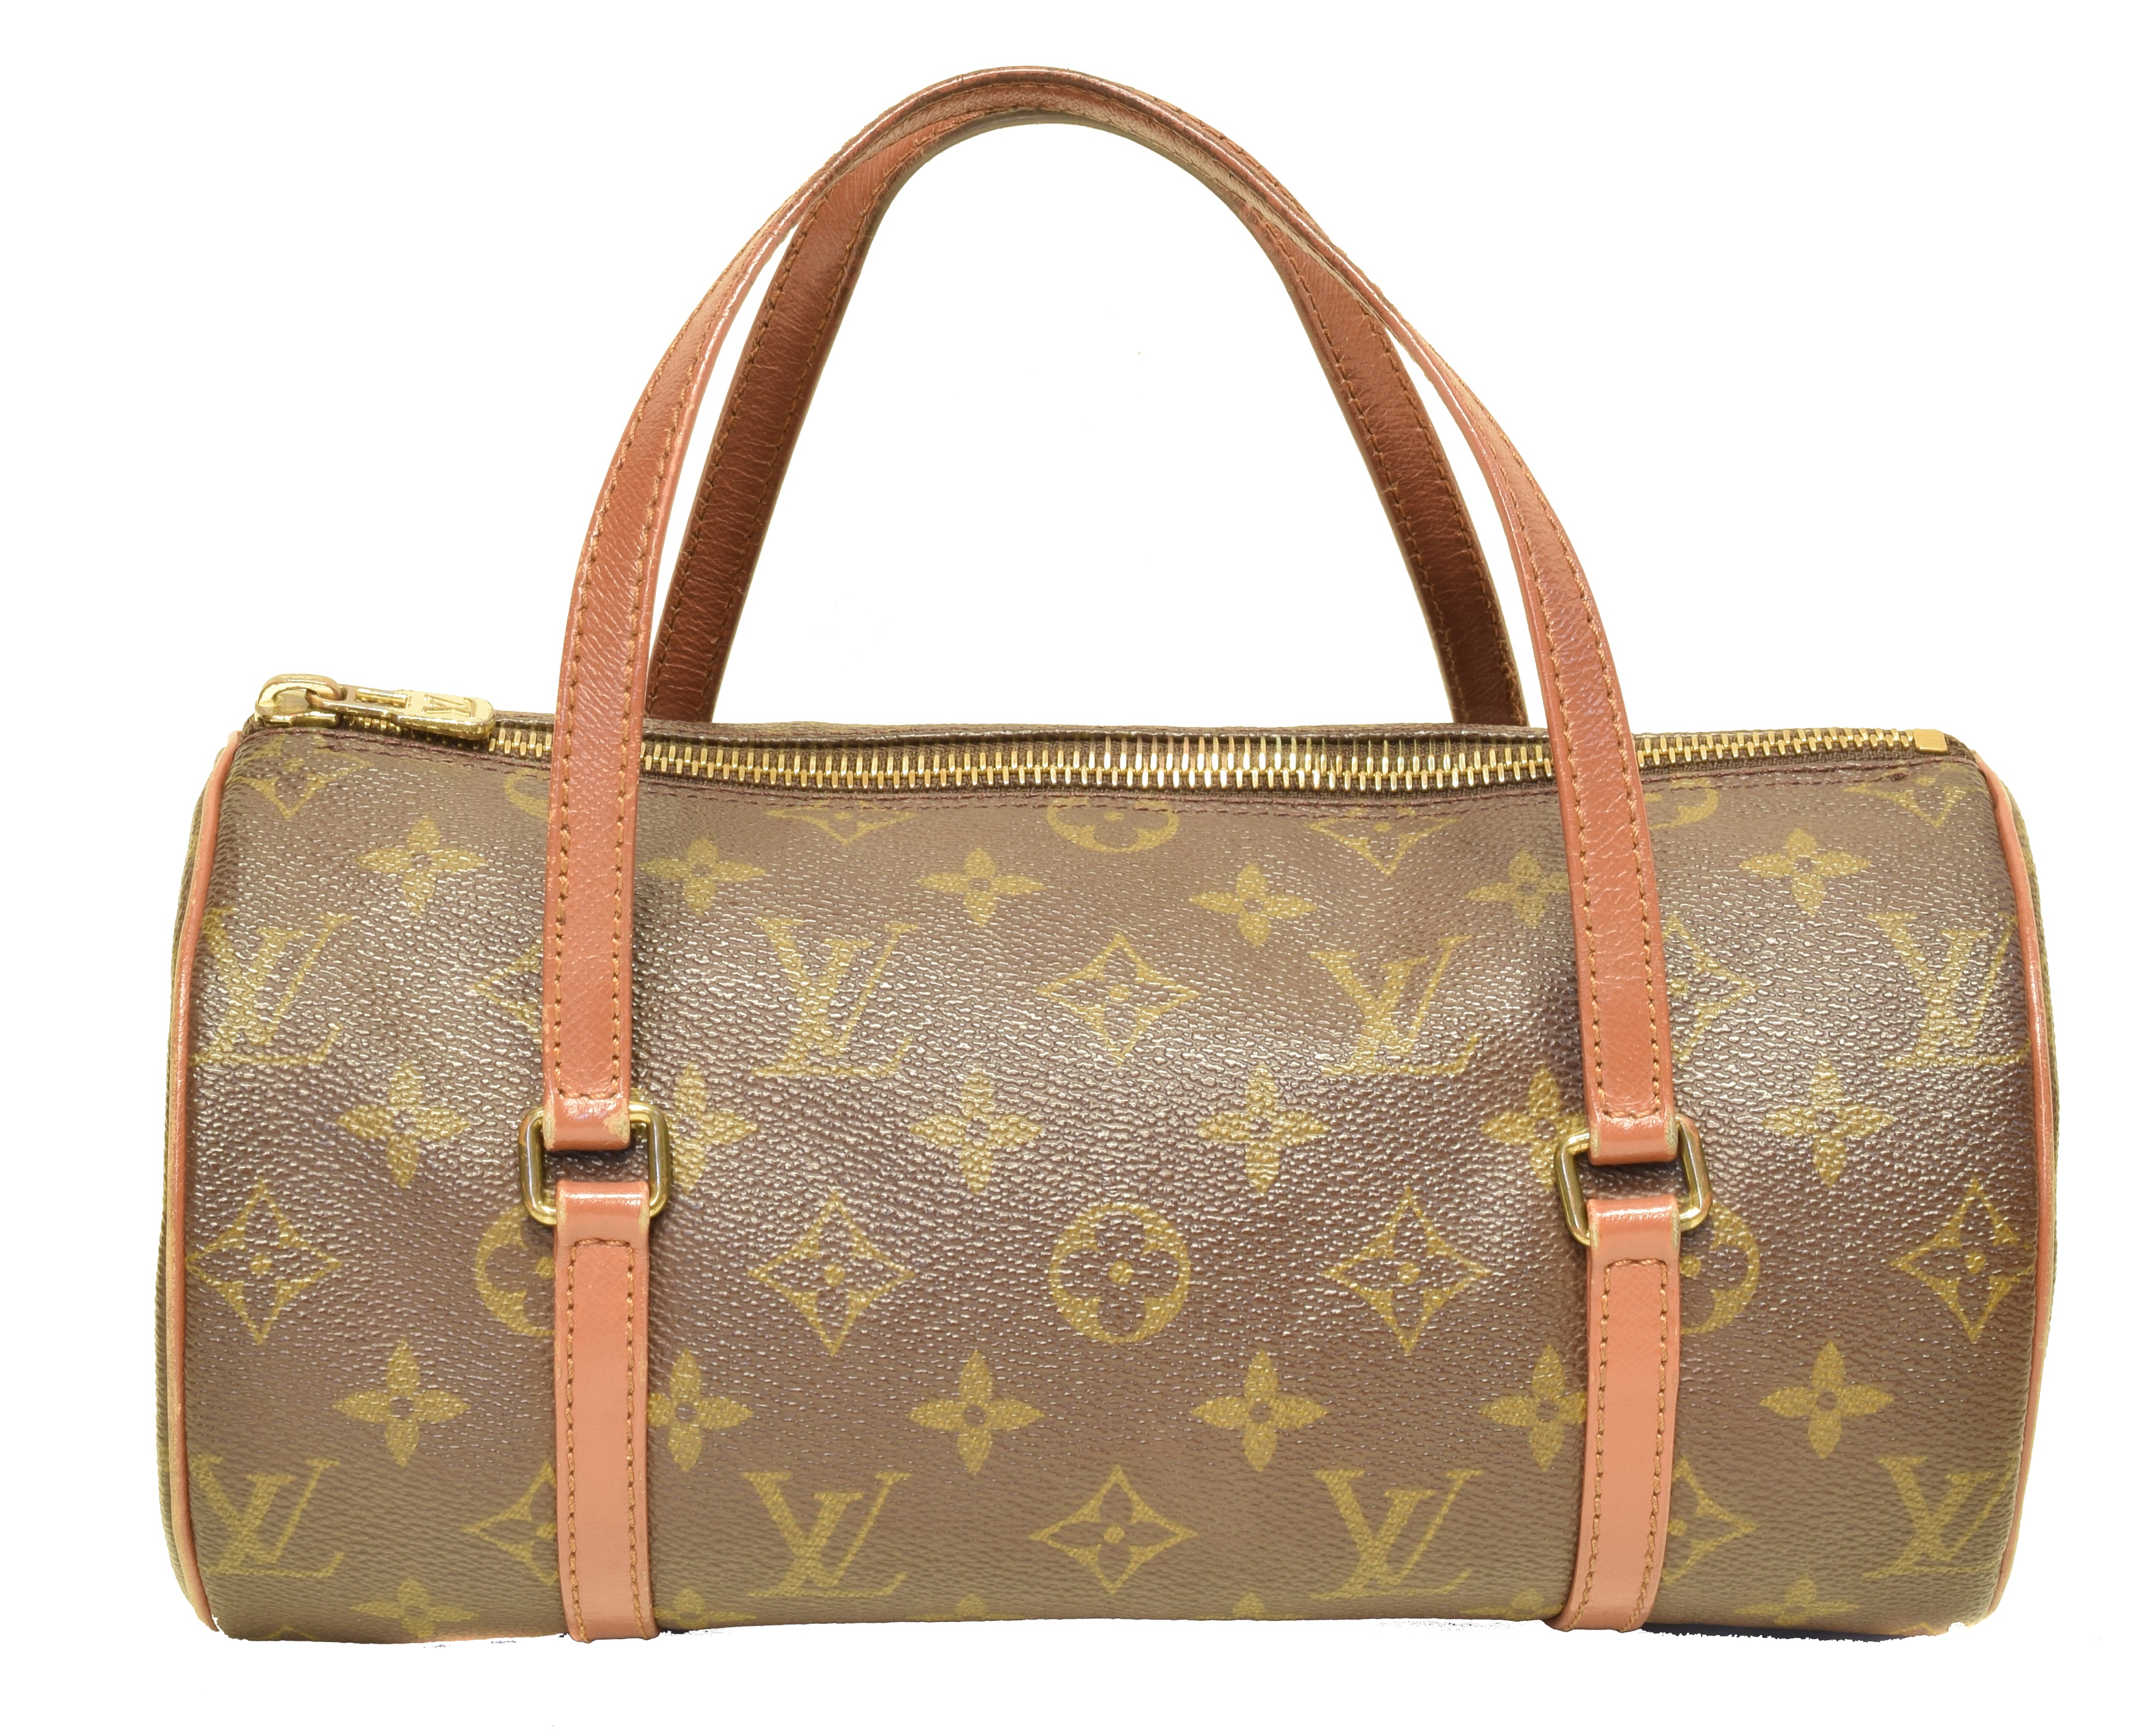 A Louis Vuitton Monogram Papillon 26 handbag,